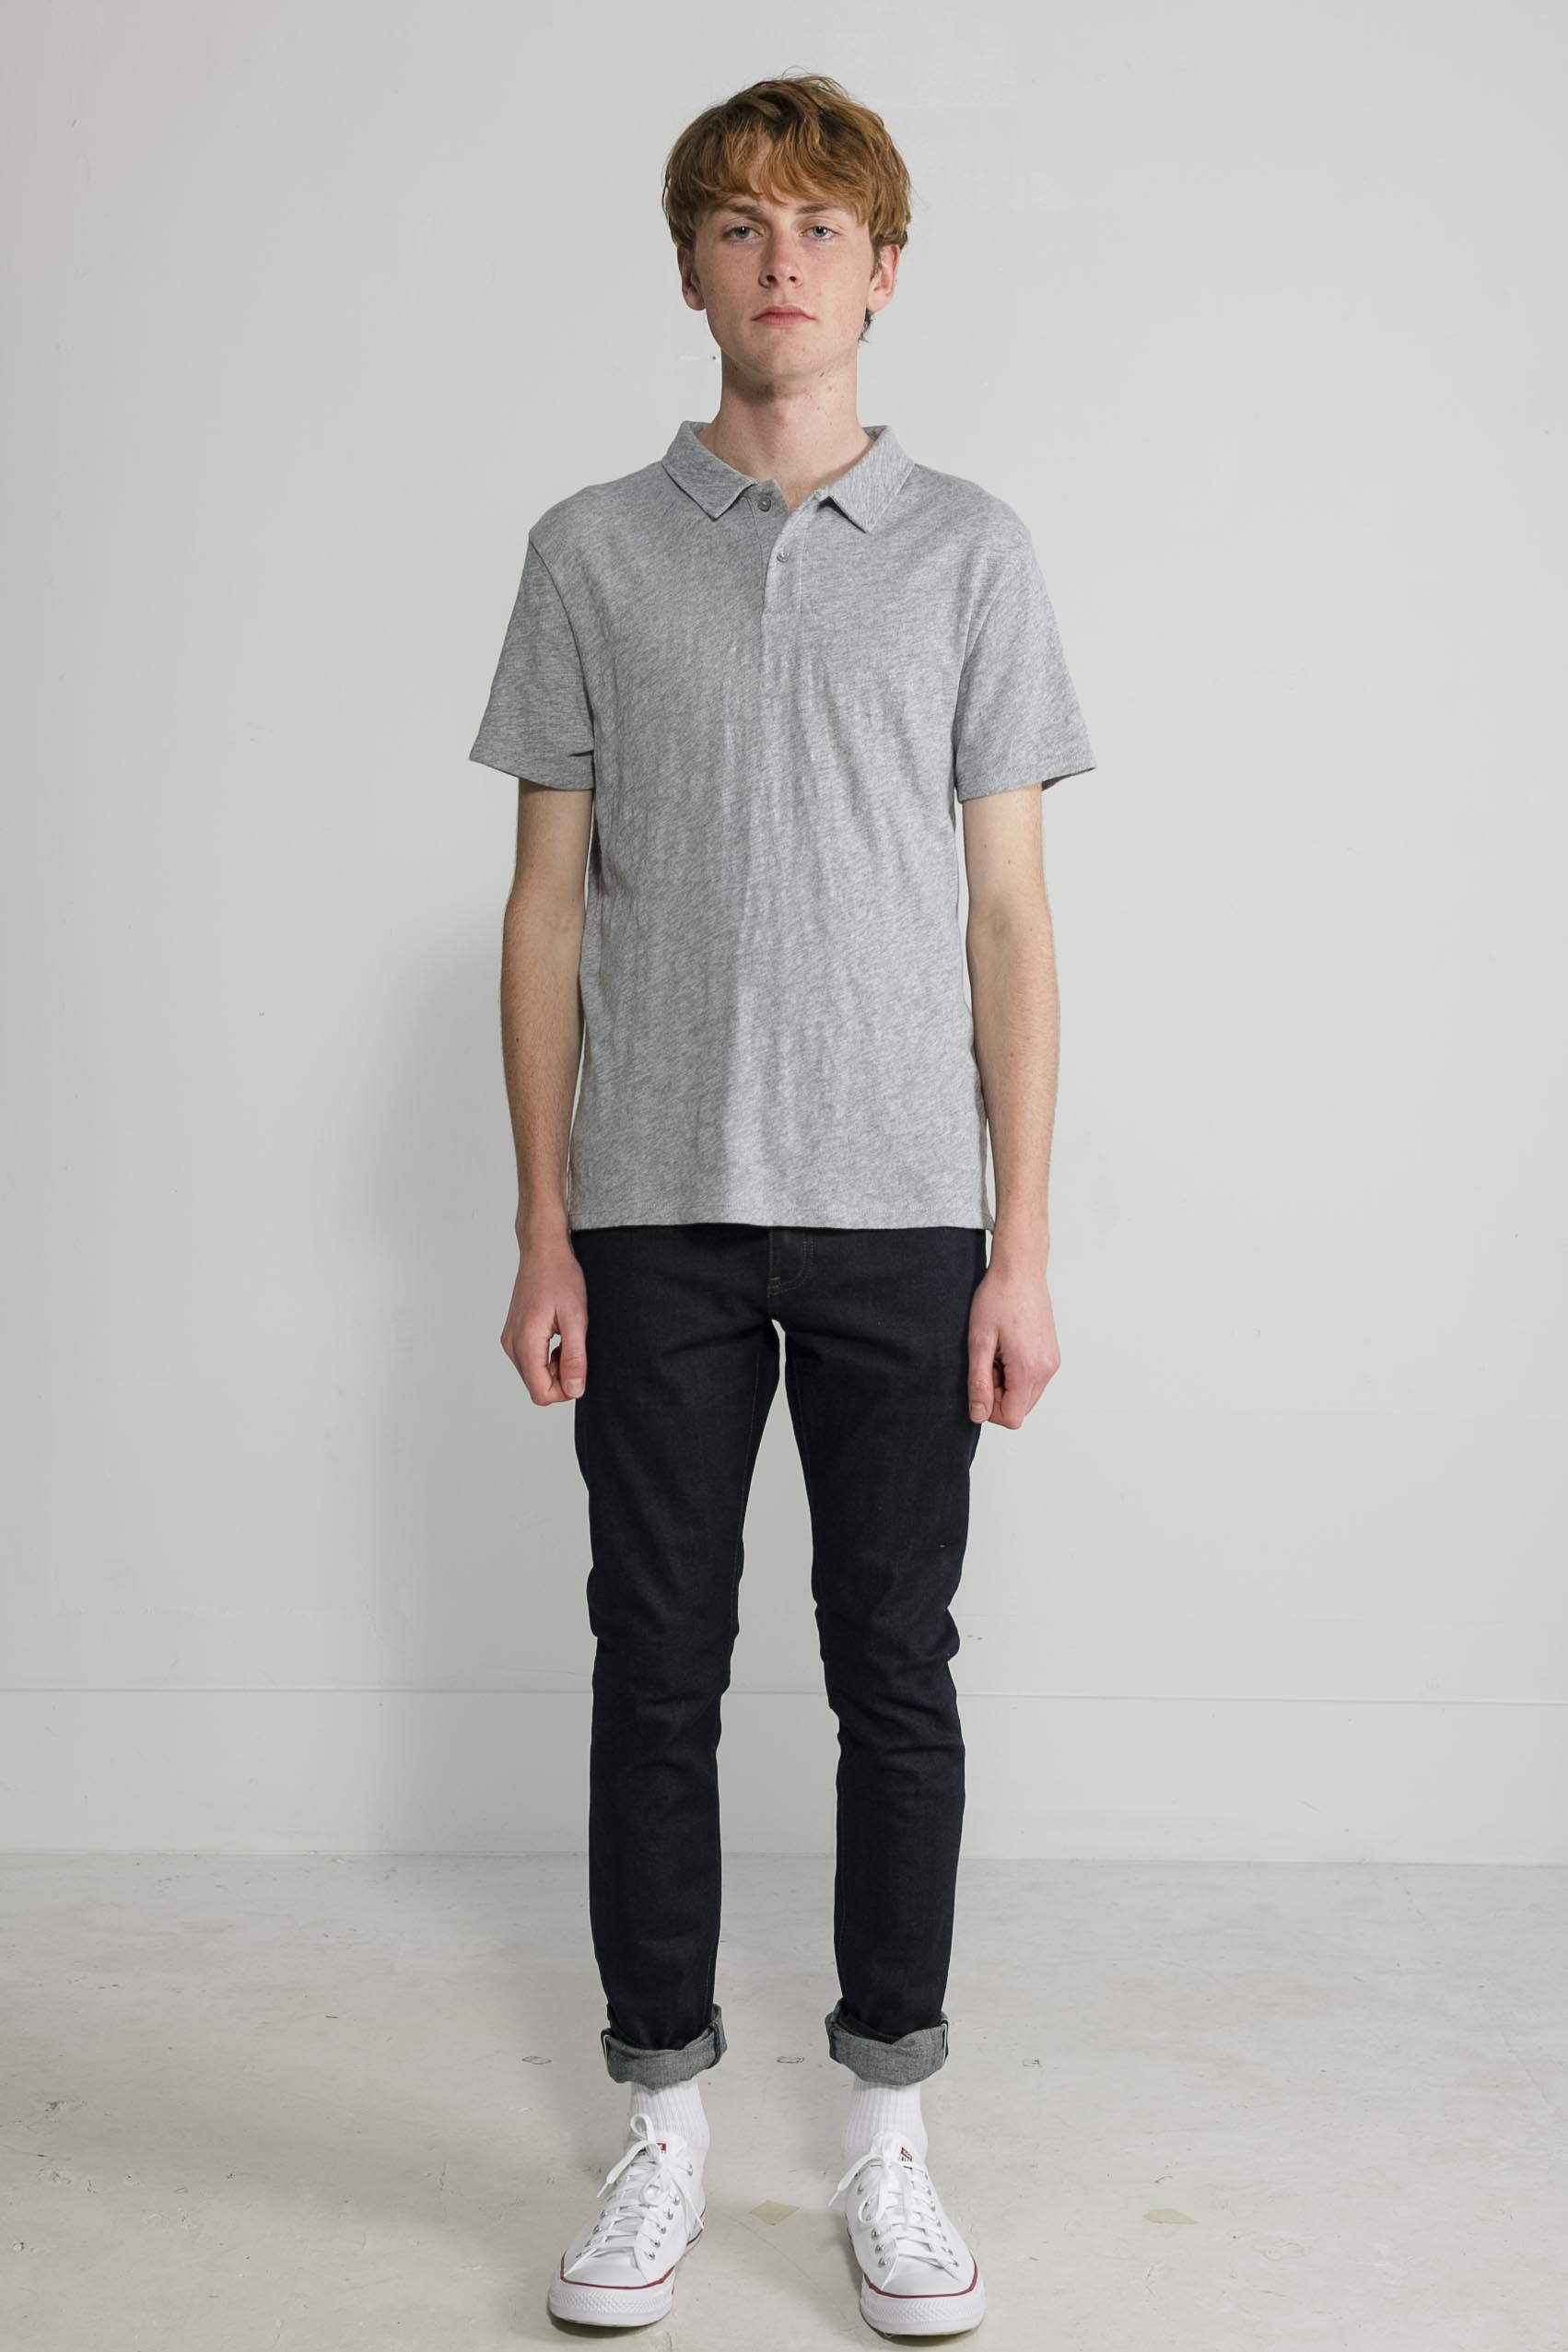 Slub Jersey Polo in Melange Grey 001